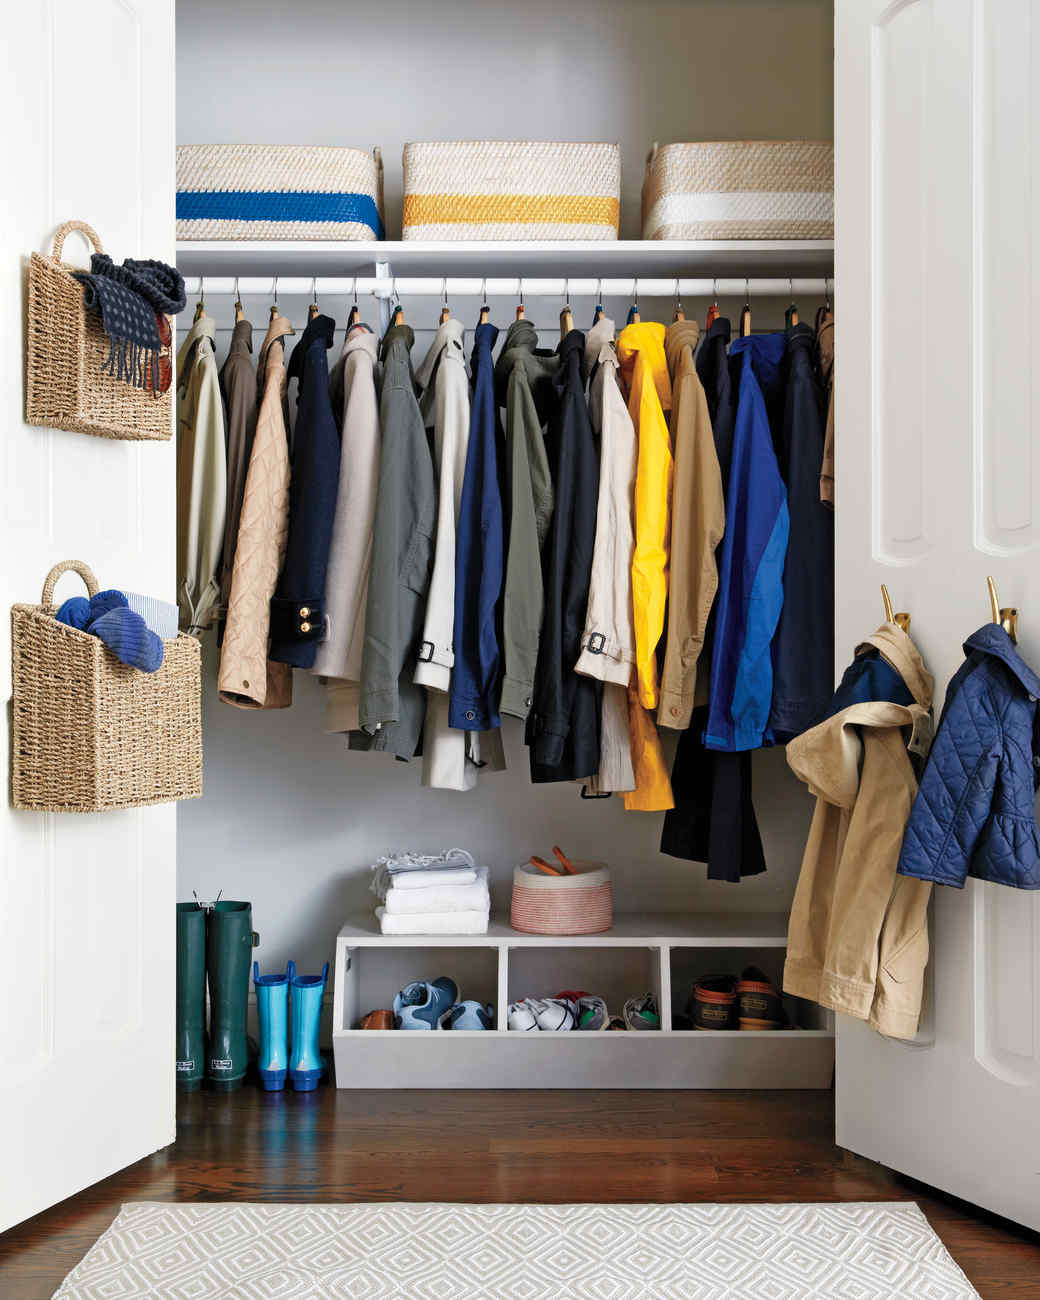 this is the related images of People Who Organize Closets